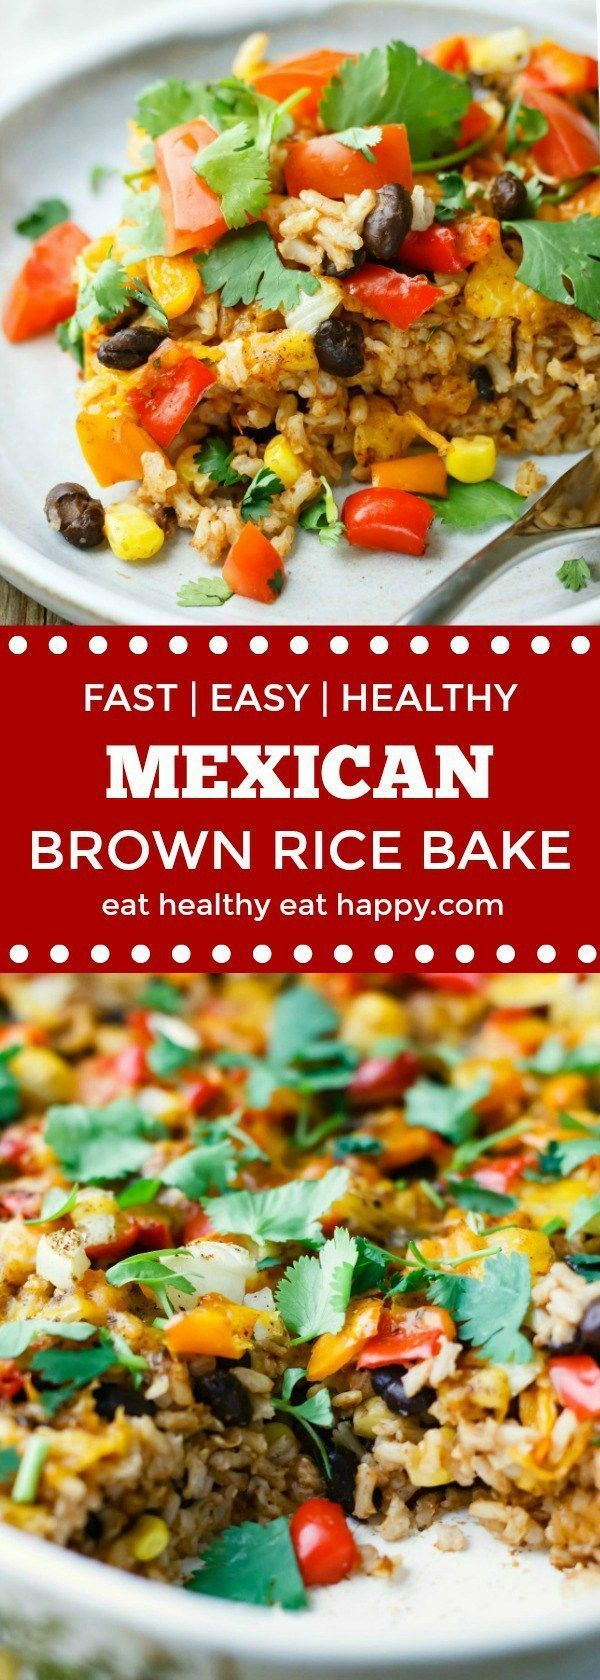 Easy Mexican Brown Rice Bake Is A Homecooked Meal That's Healthy, Fast And